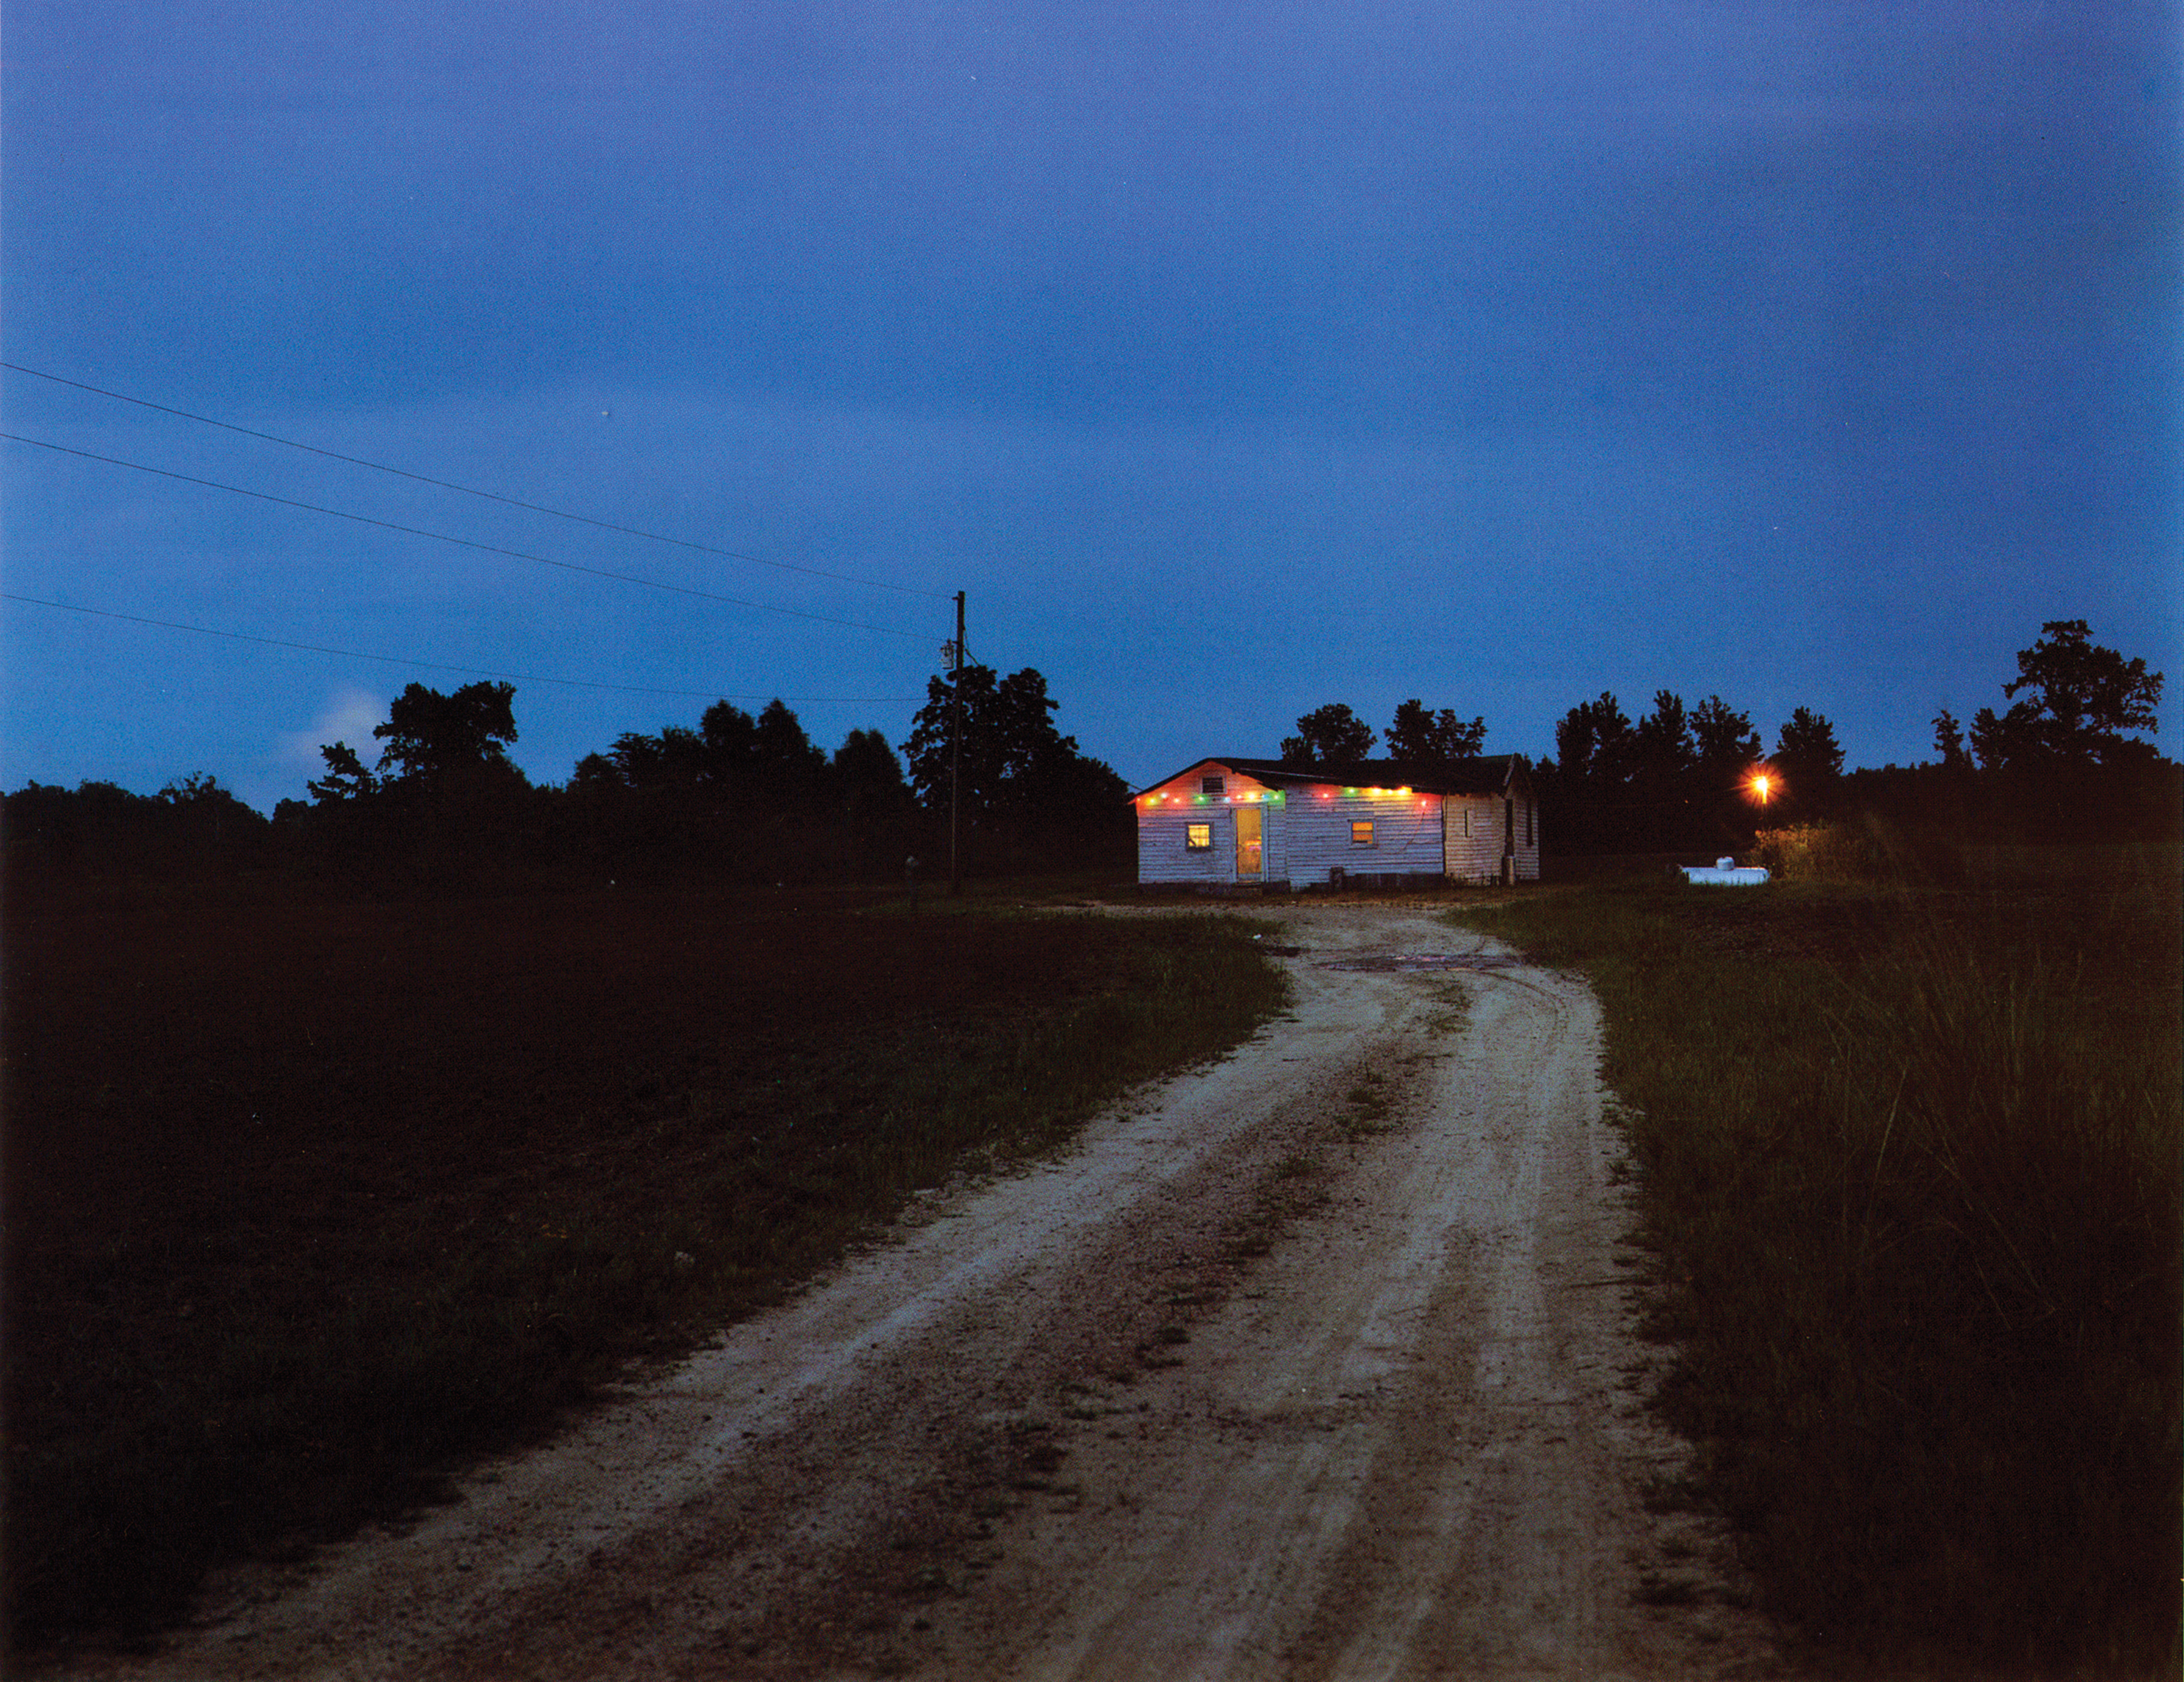 Turk's Place, Leflore County, 1989. Photo by Birney Imes.